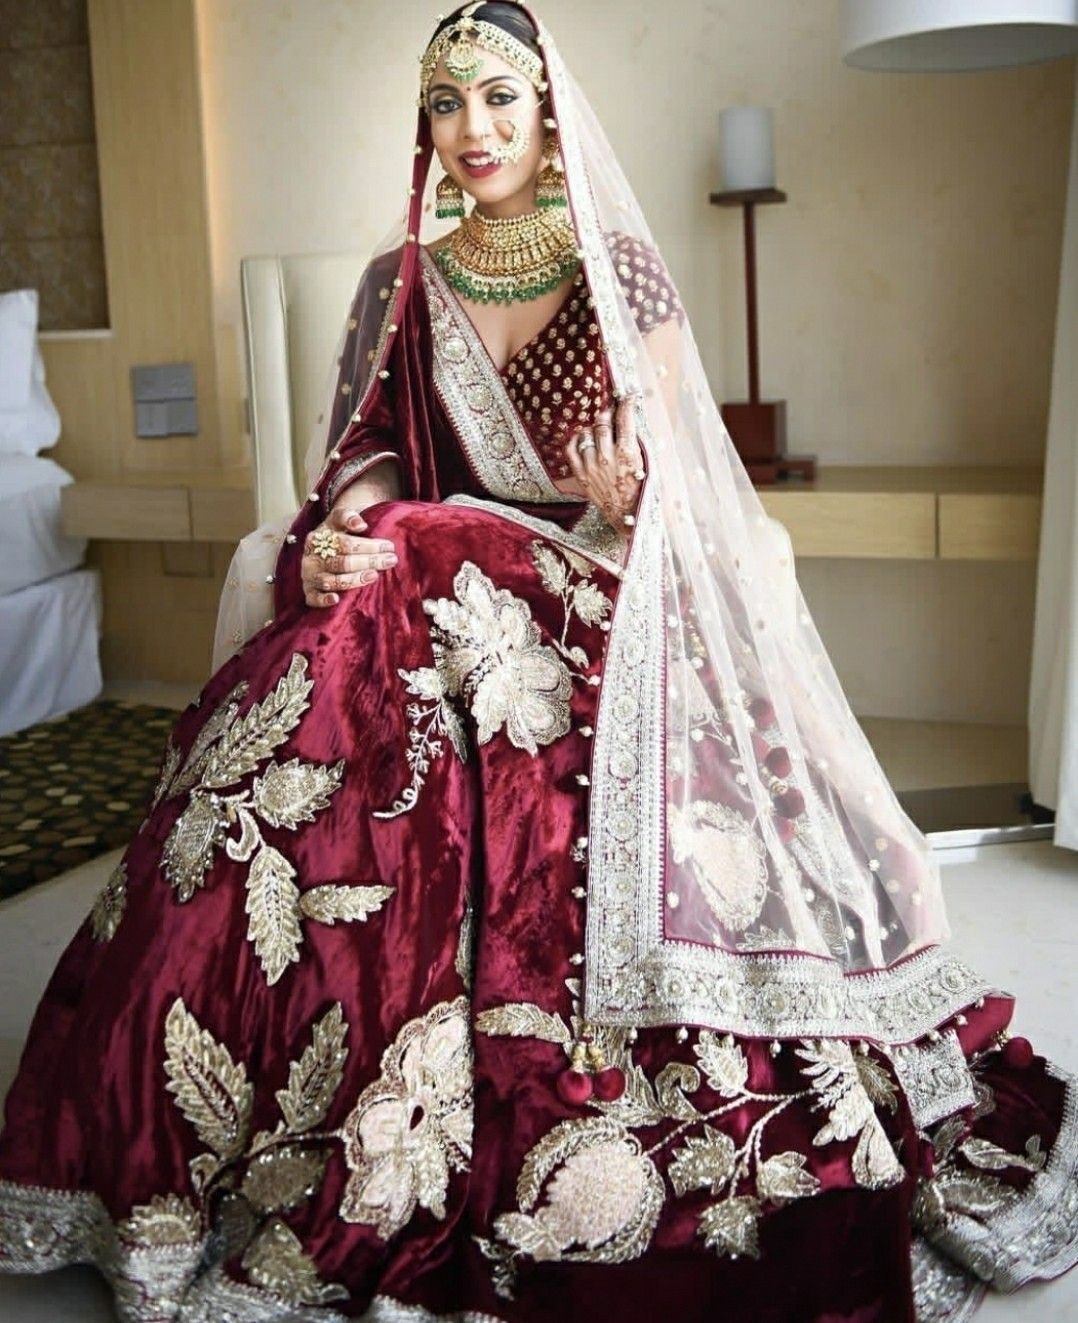 Red lace wedding dress october 2018 Pin by urmila jasawat on Bridal photography in   Pinterest